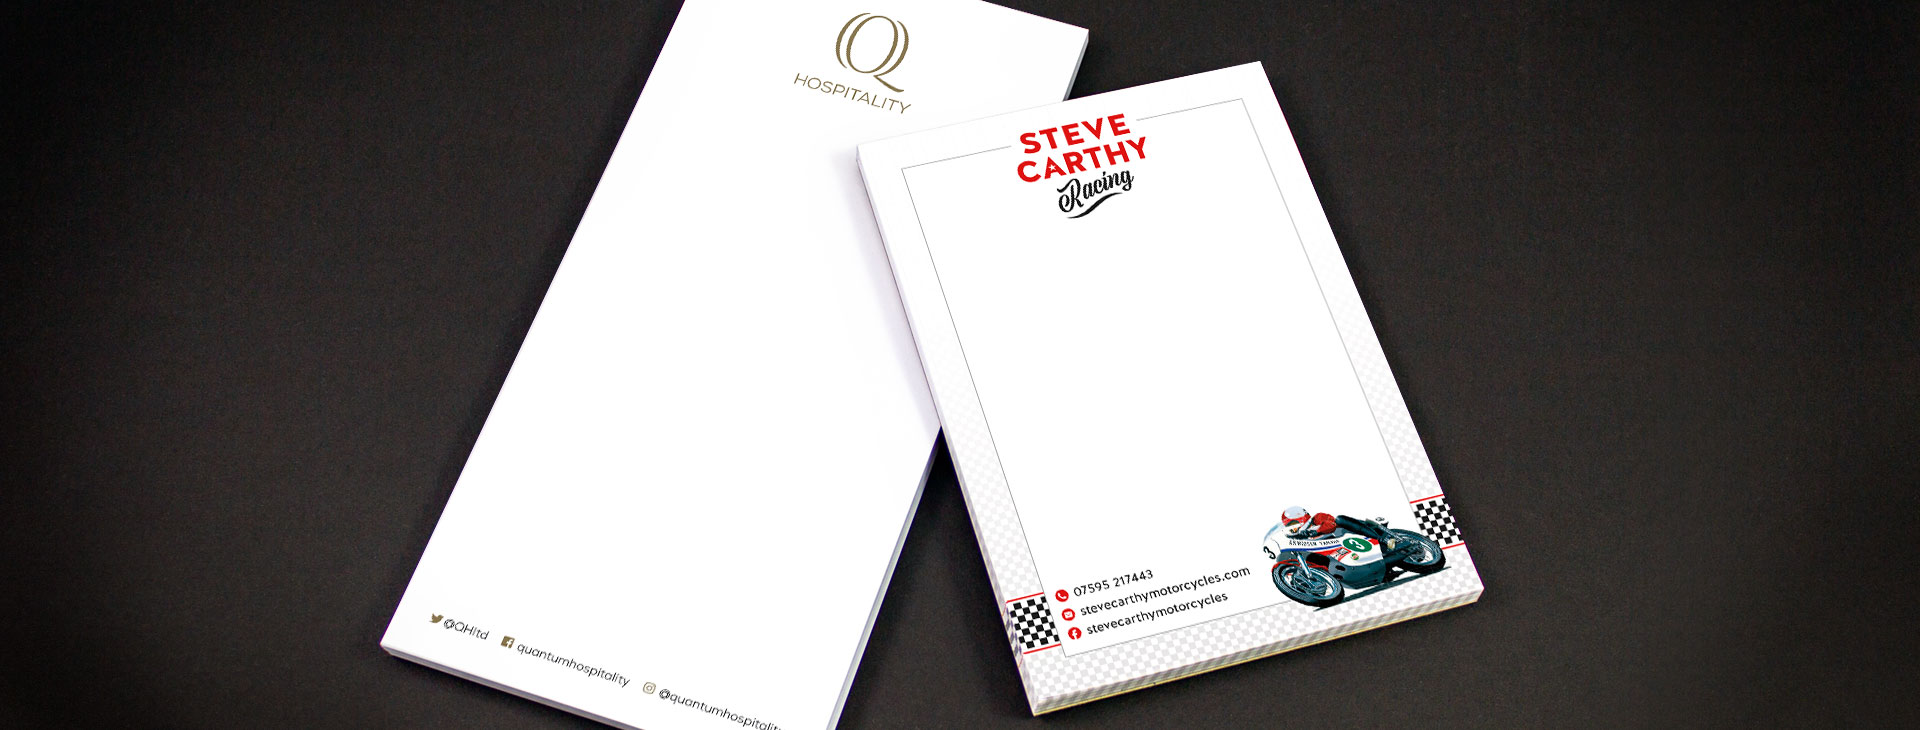 Note pad design and print for corporate stationery packs